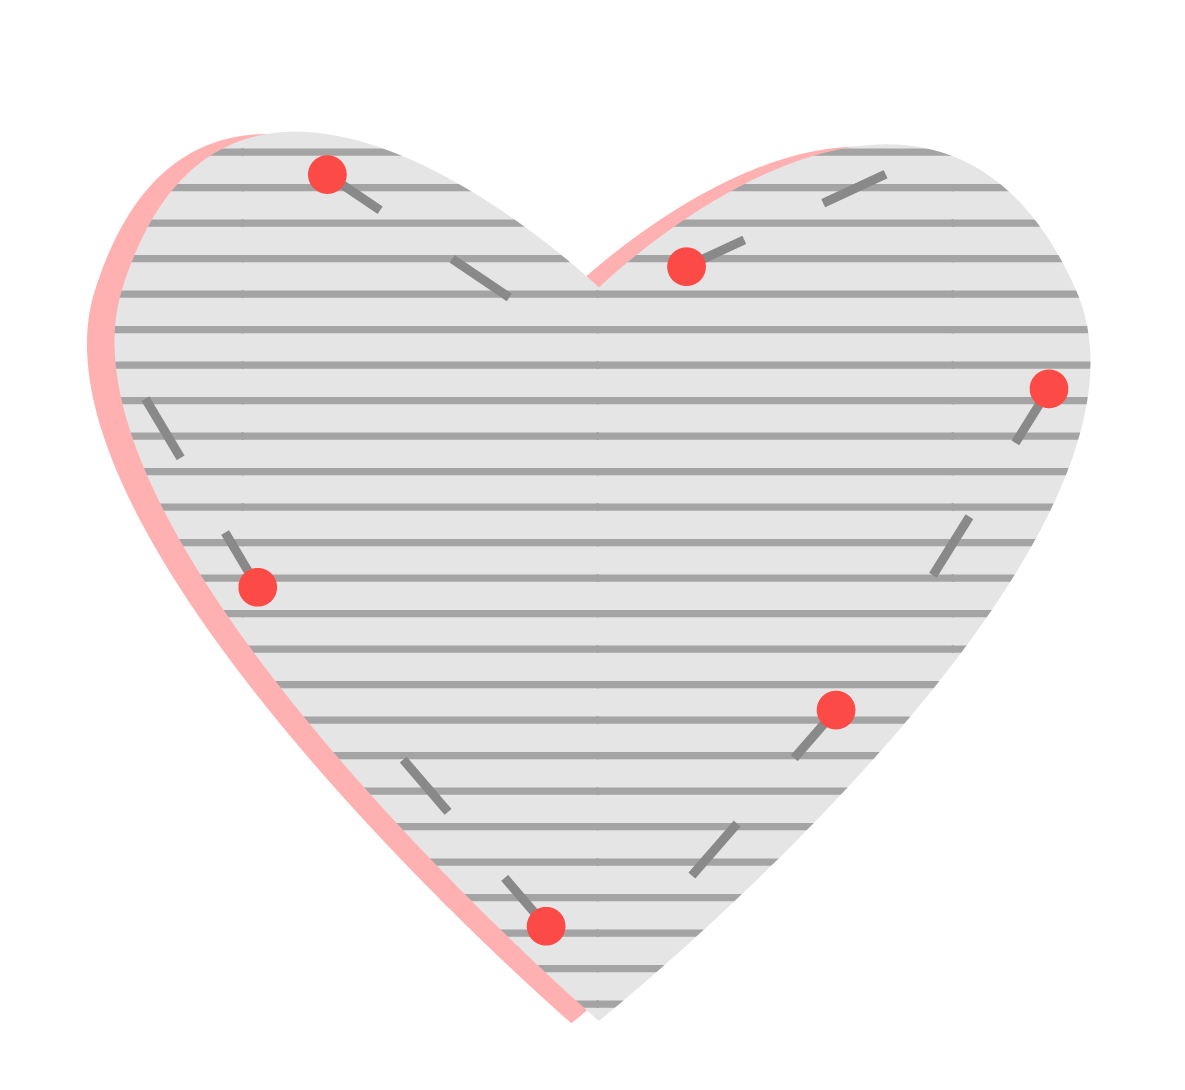 Heart Photo 02.png